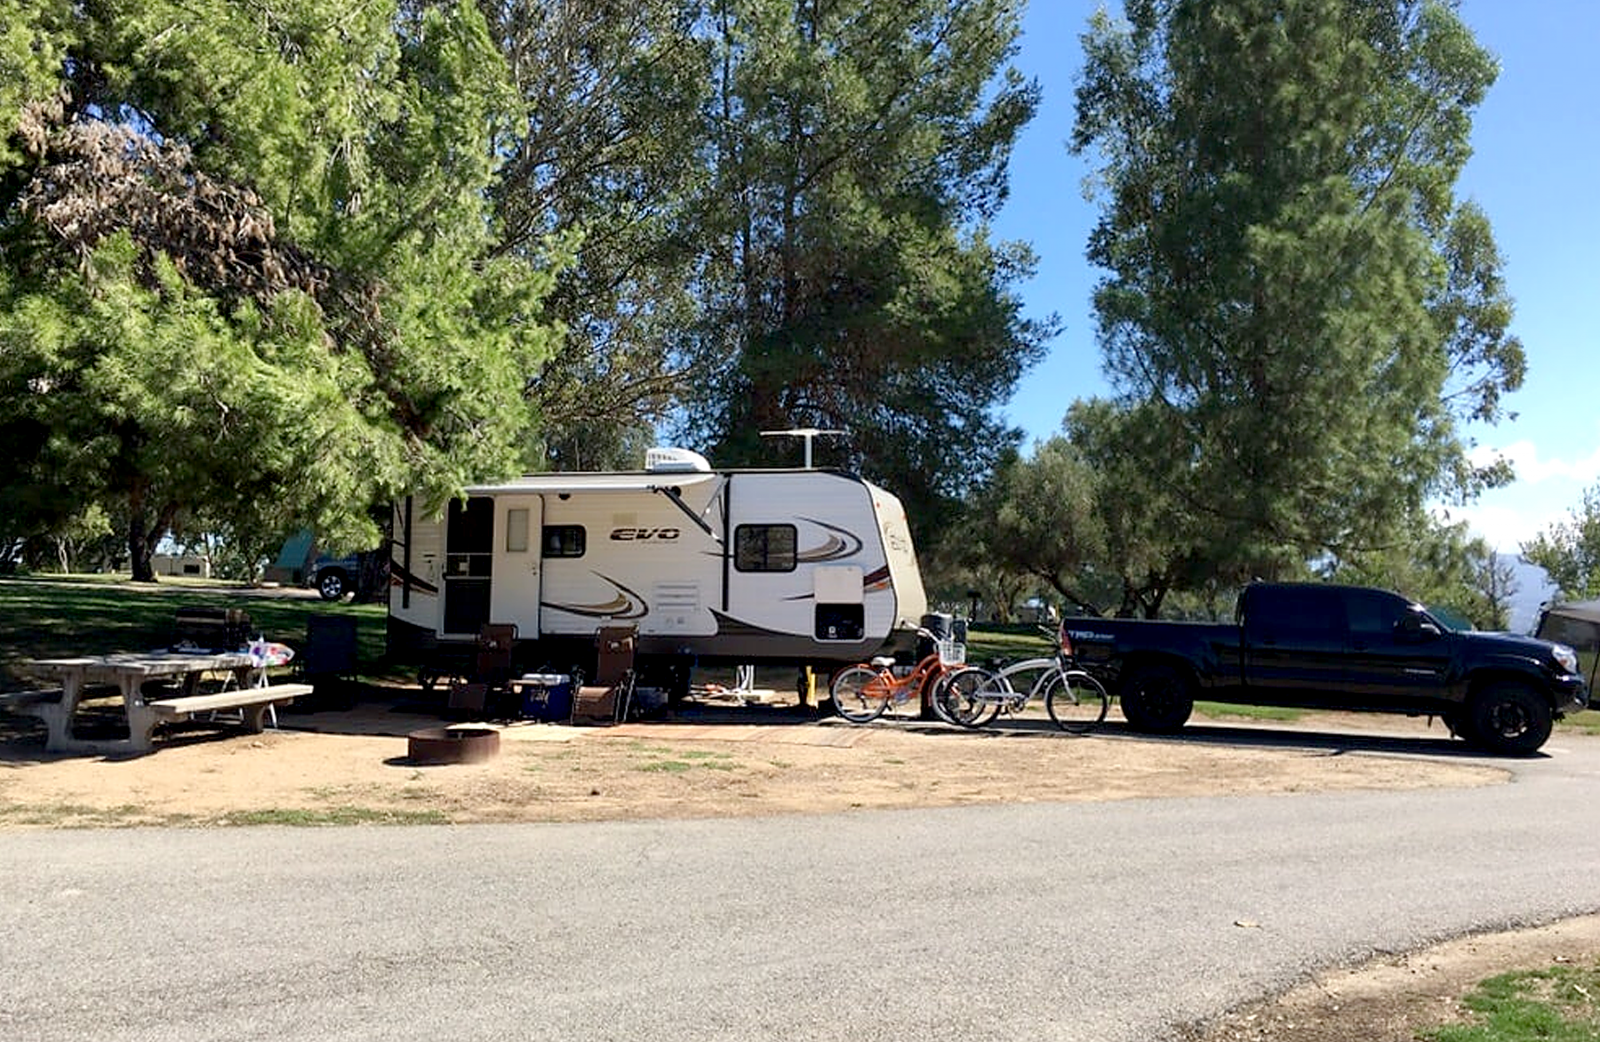 Prado RV camper parked under a tree.